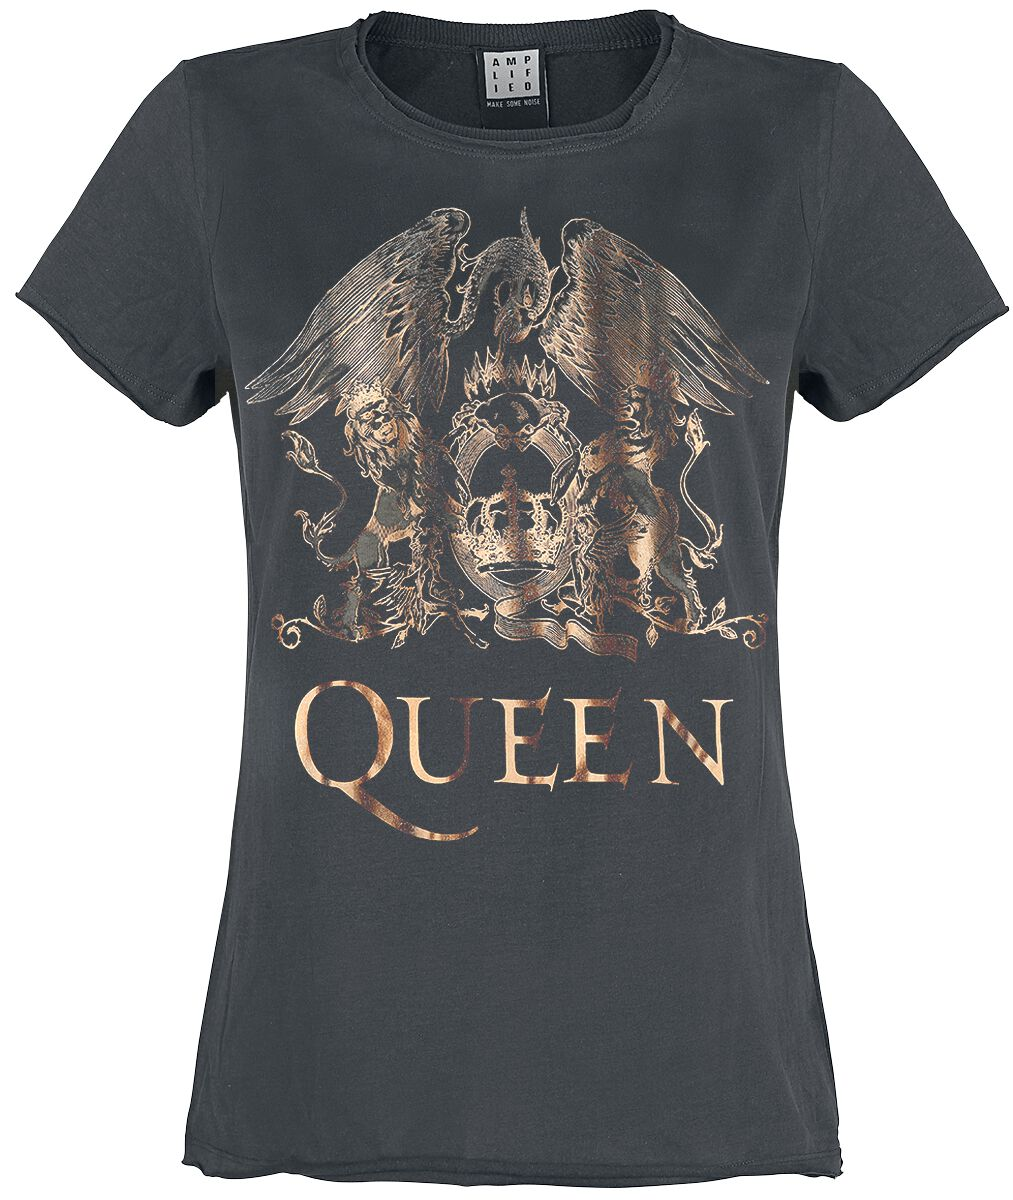 Queen Amplified Collection - Metallic Edition - Royal Crest T-Shirt charcoal